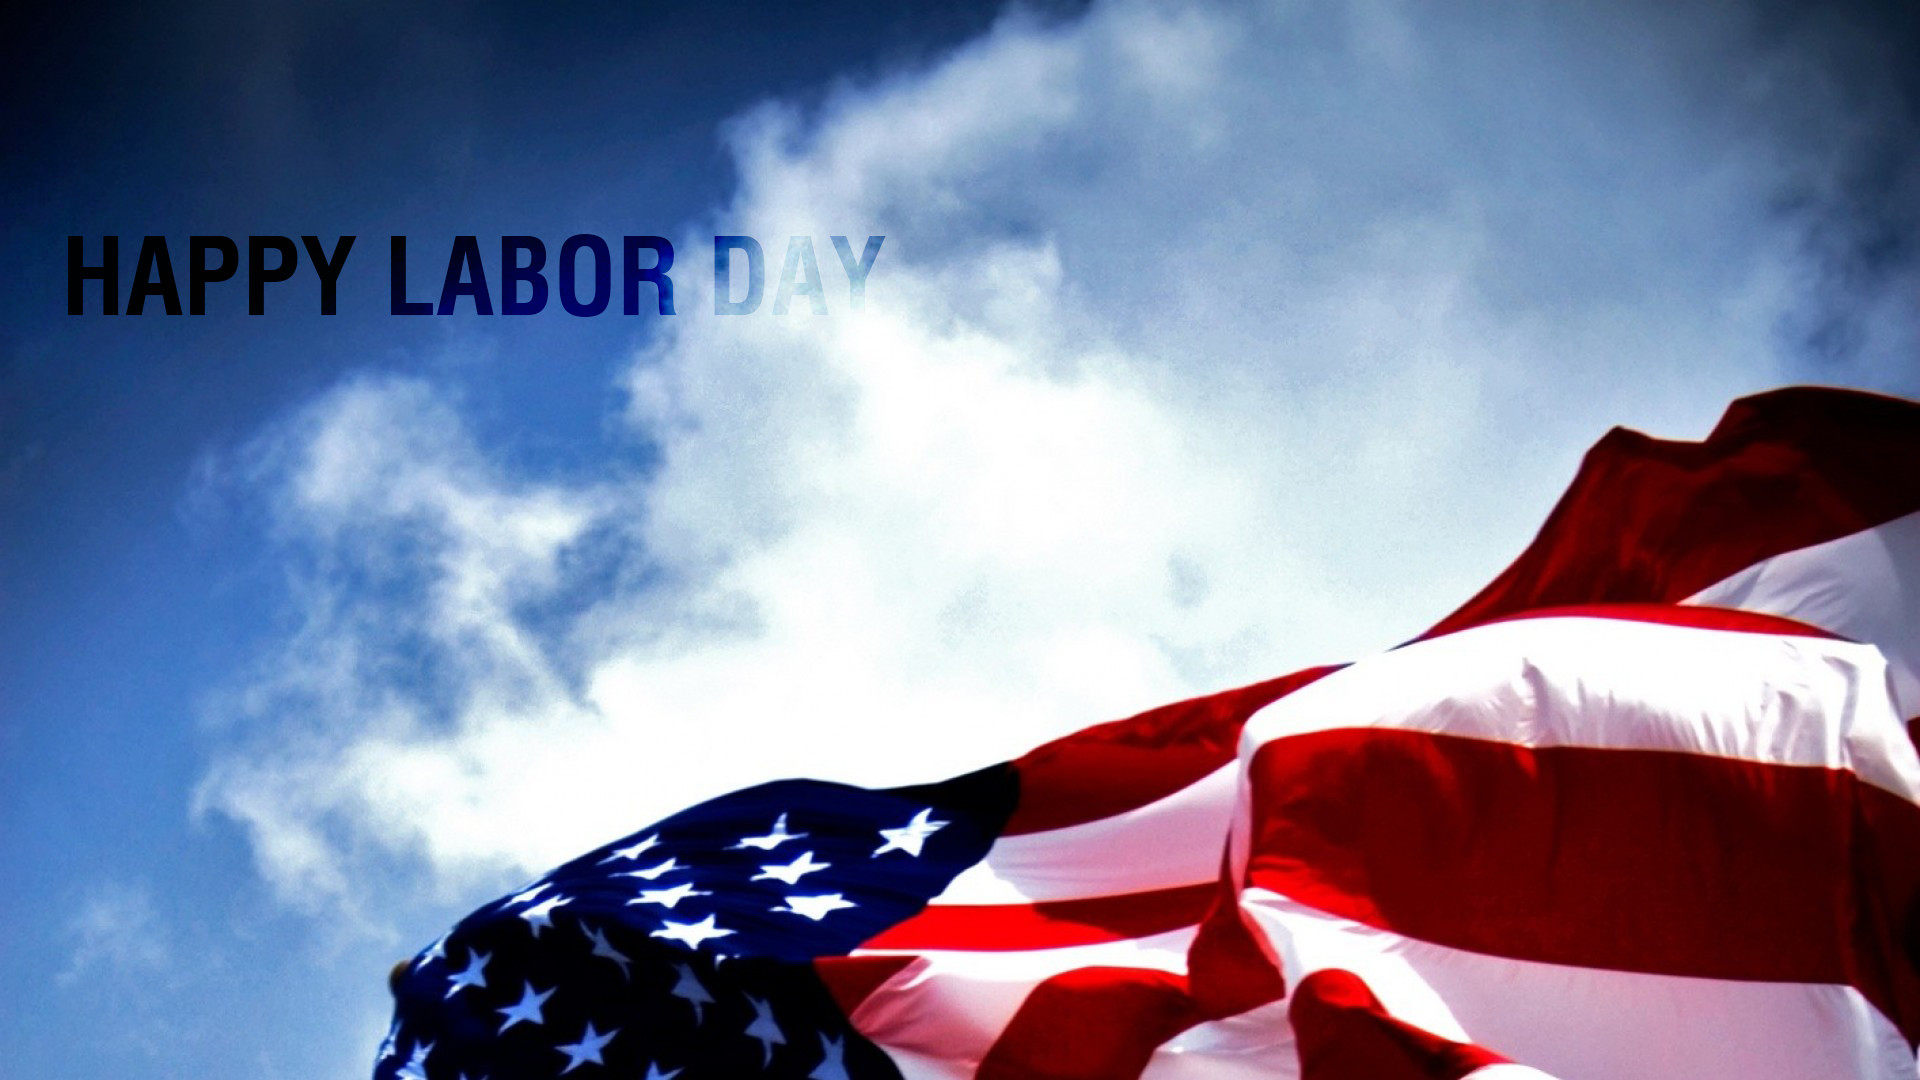 Res: 1920x1080, Labor Day Wallpapers 2 - 1920 X 1080